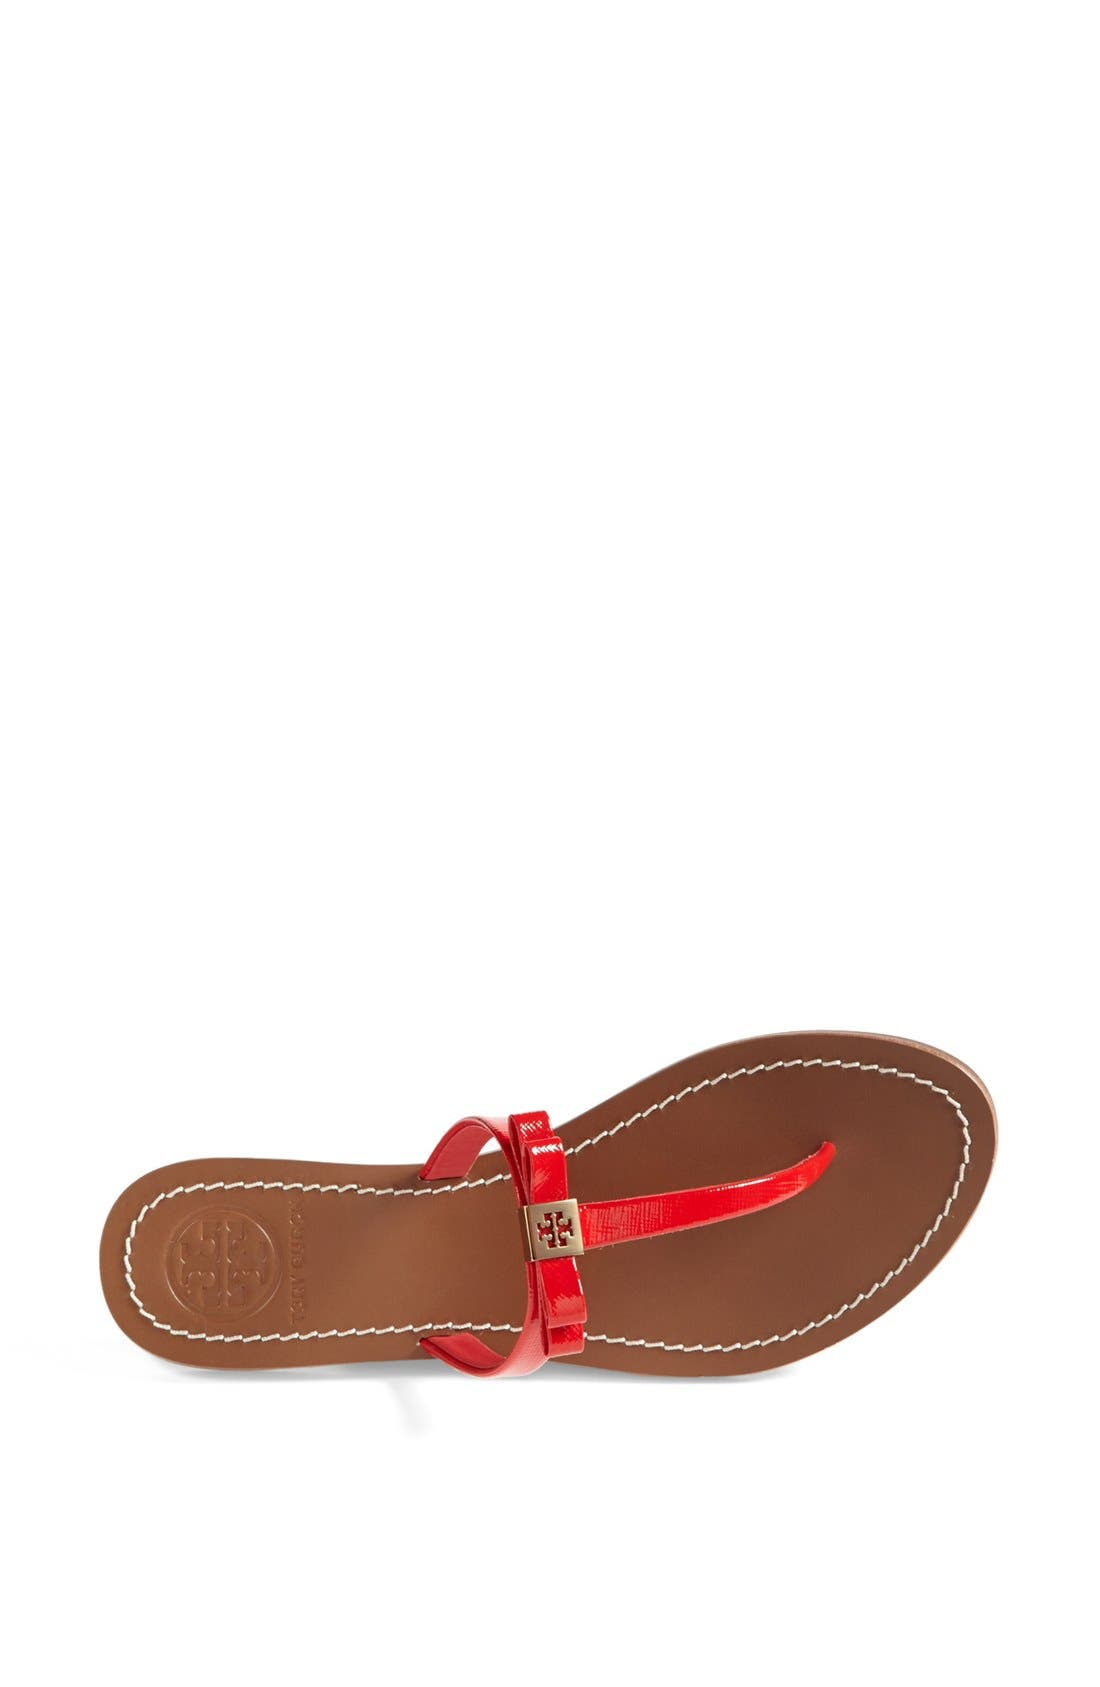 Alternate Image 3  - Tory Burch 'Leighanne' Thong Sandal (Online Only)